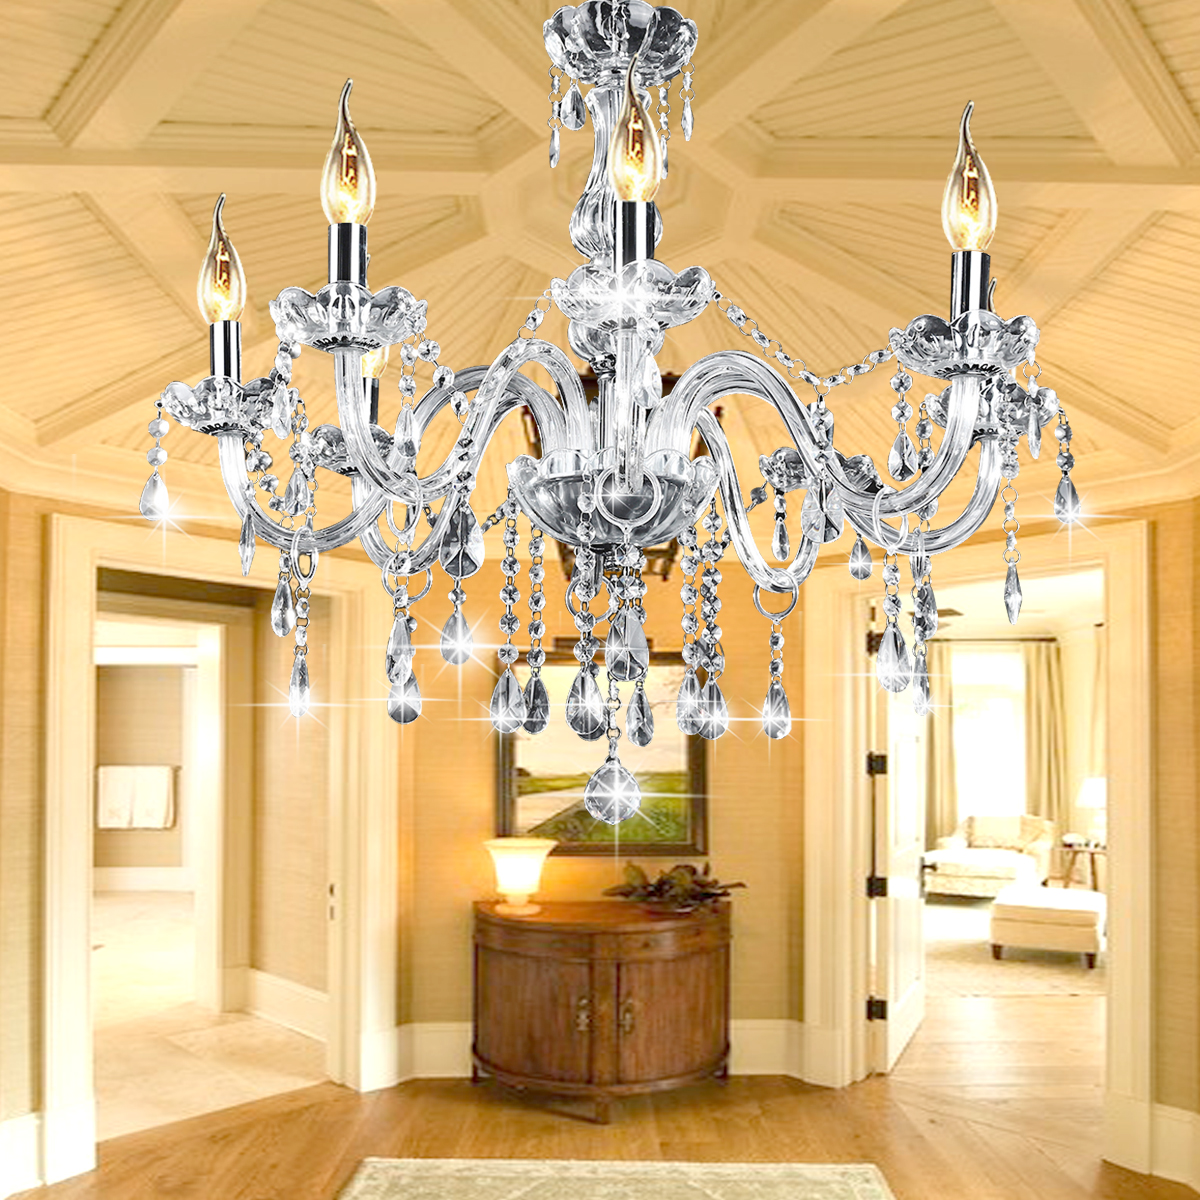 AC110-240V 8 Heads E12 Clear Crystal Chandelier Light Modern Chandeliers Crystal Light Fixture Bedroom Hanging m17 new outdoor portable bluetooth speaker 15w subwoofer multi functional card insert microphone speaker wireless stereo